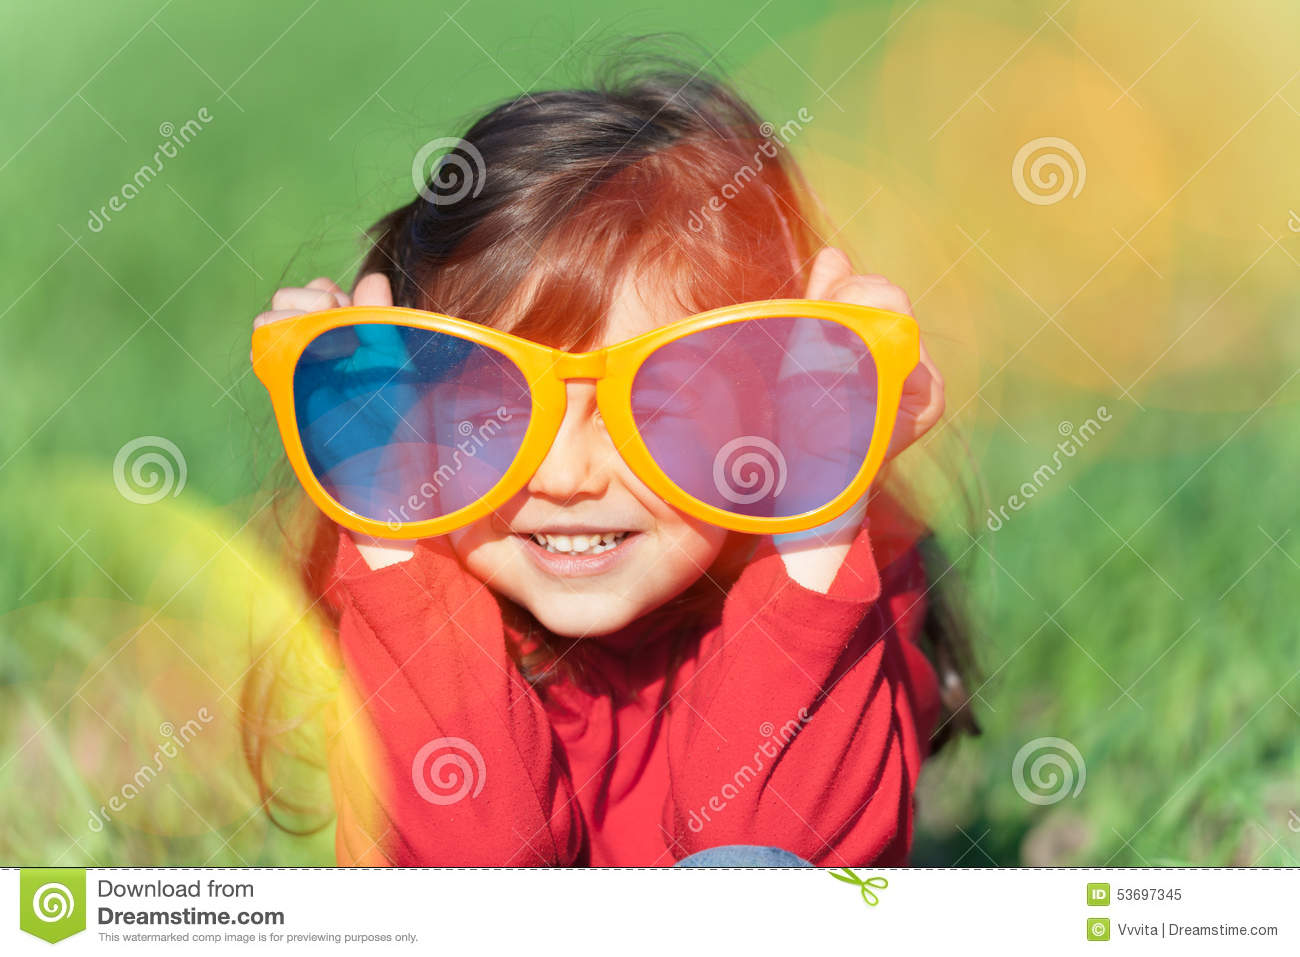 Arbeitsagentur Indeed Little Girl Wearing Big Sunglasses Stock Image Image Of Fashion